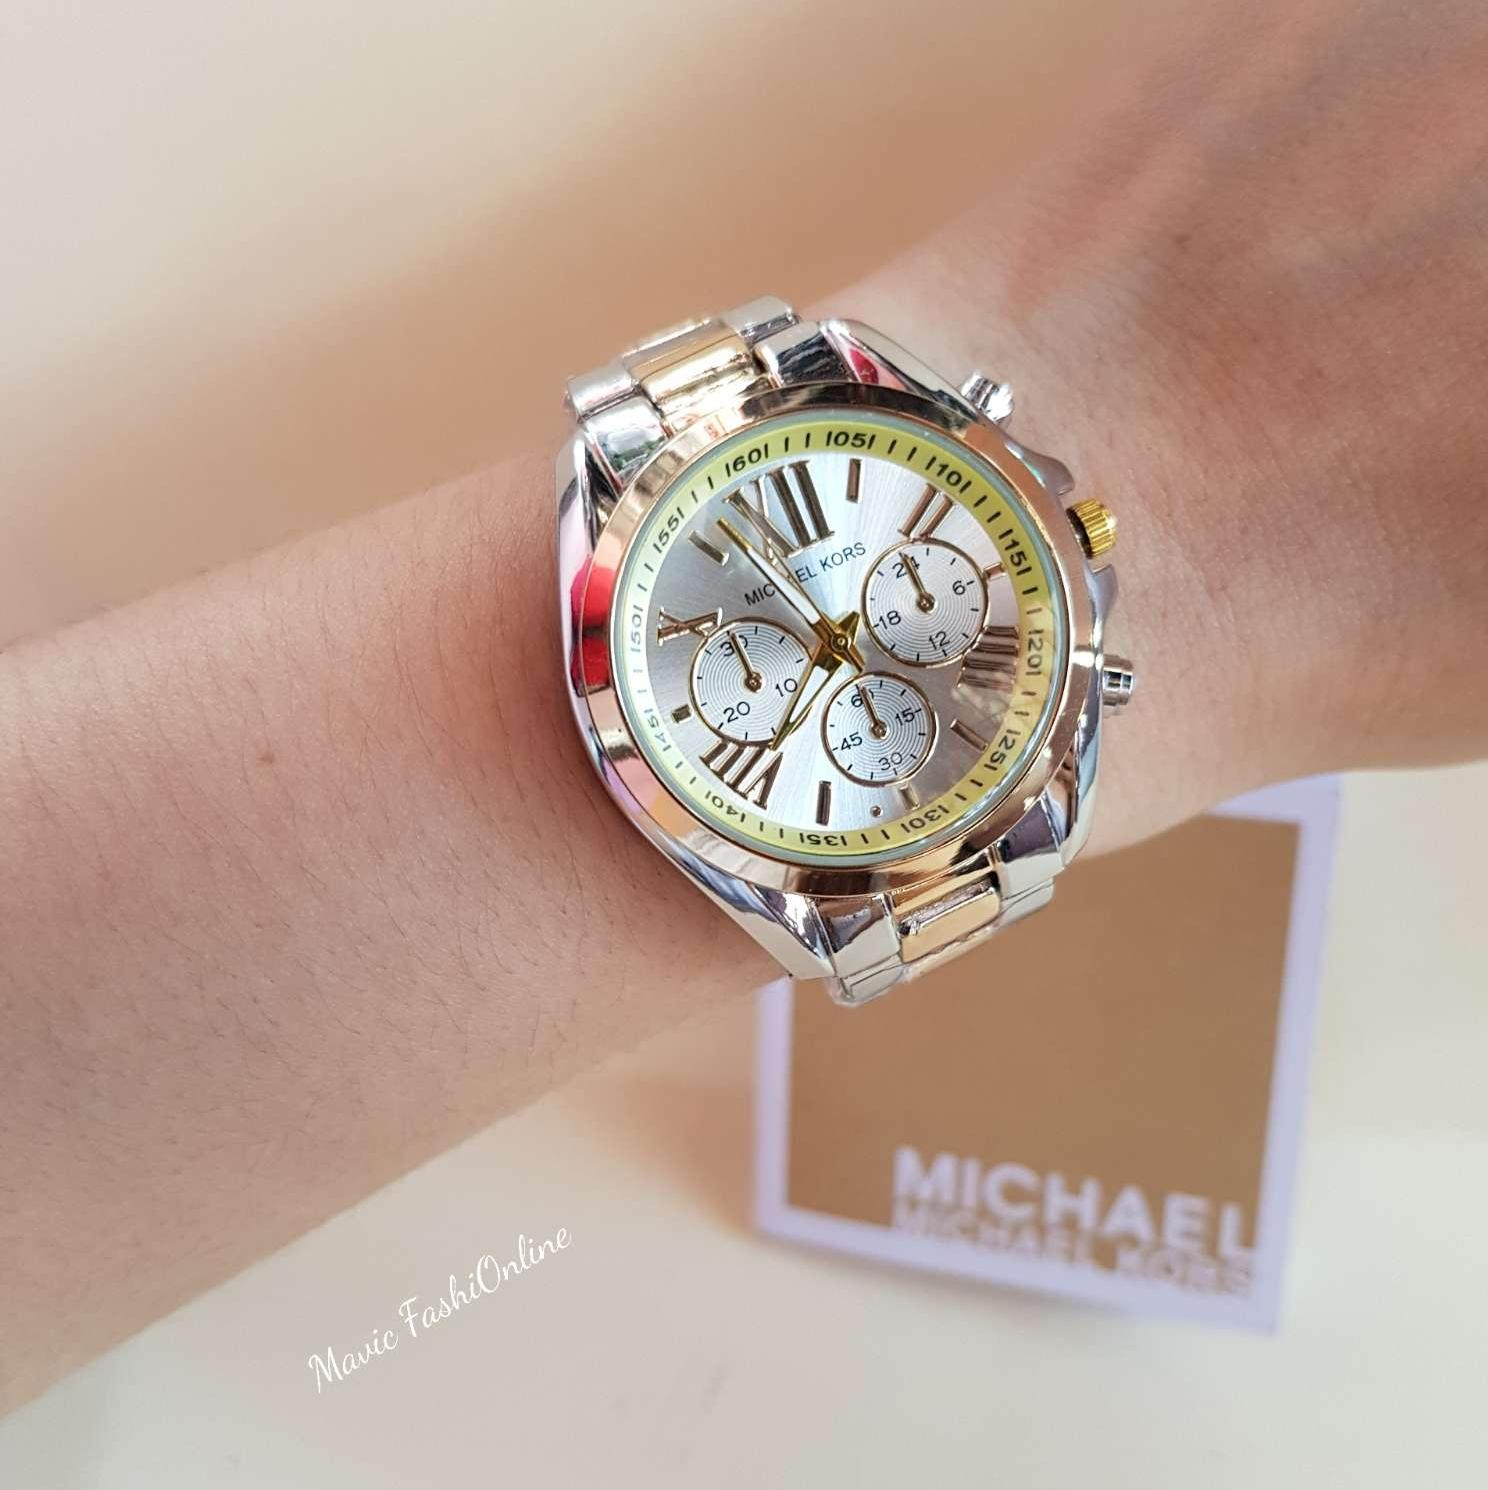 Michael Kors Philippines Watches For Women Sale 3131 Two Tone White Dial Bradshaw Womens Watch